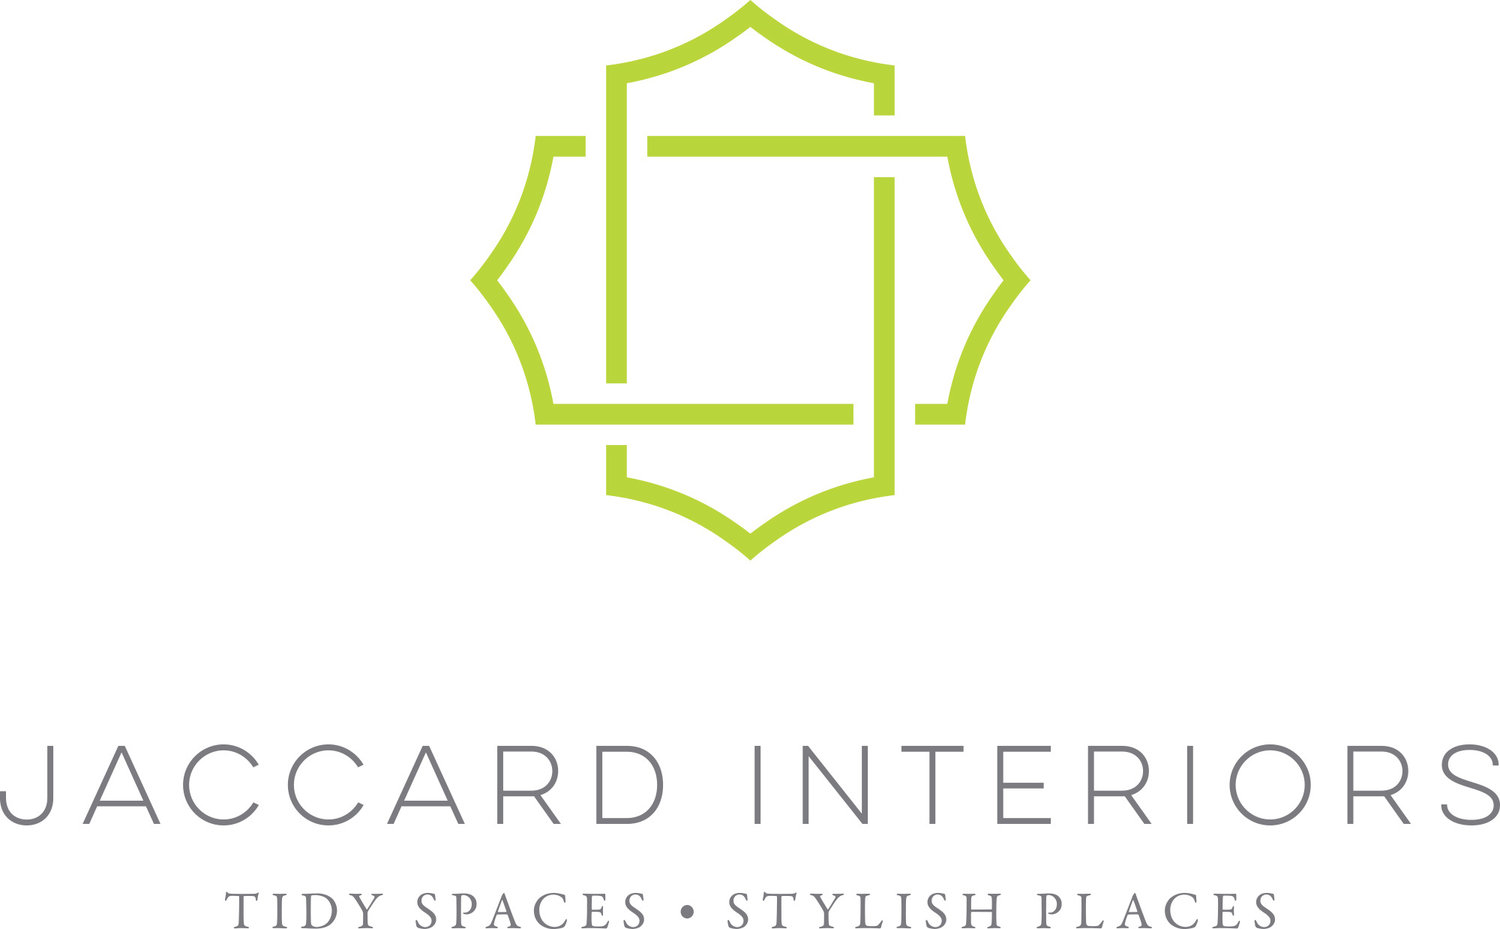 Jaccard Interiors